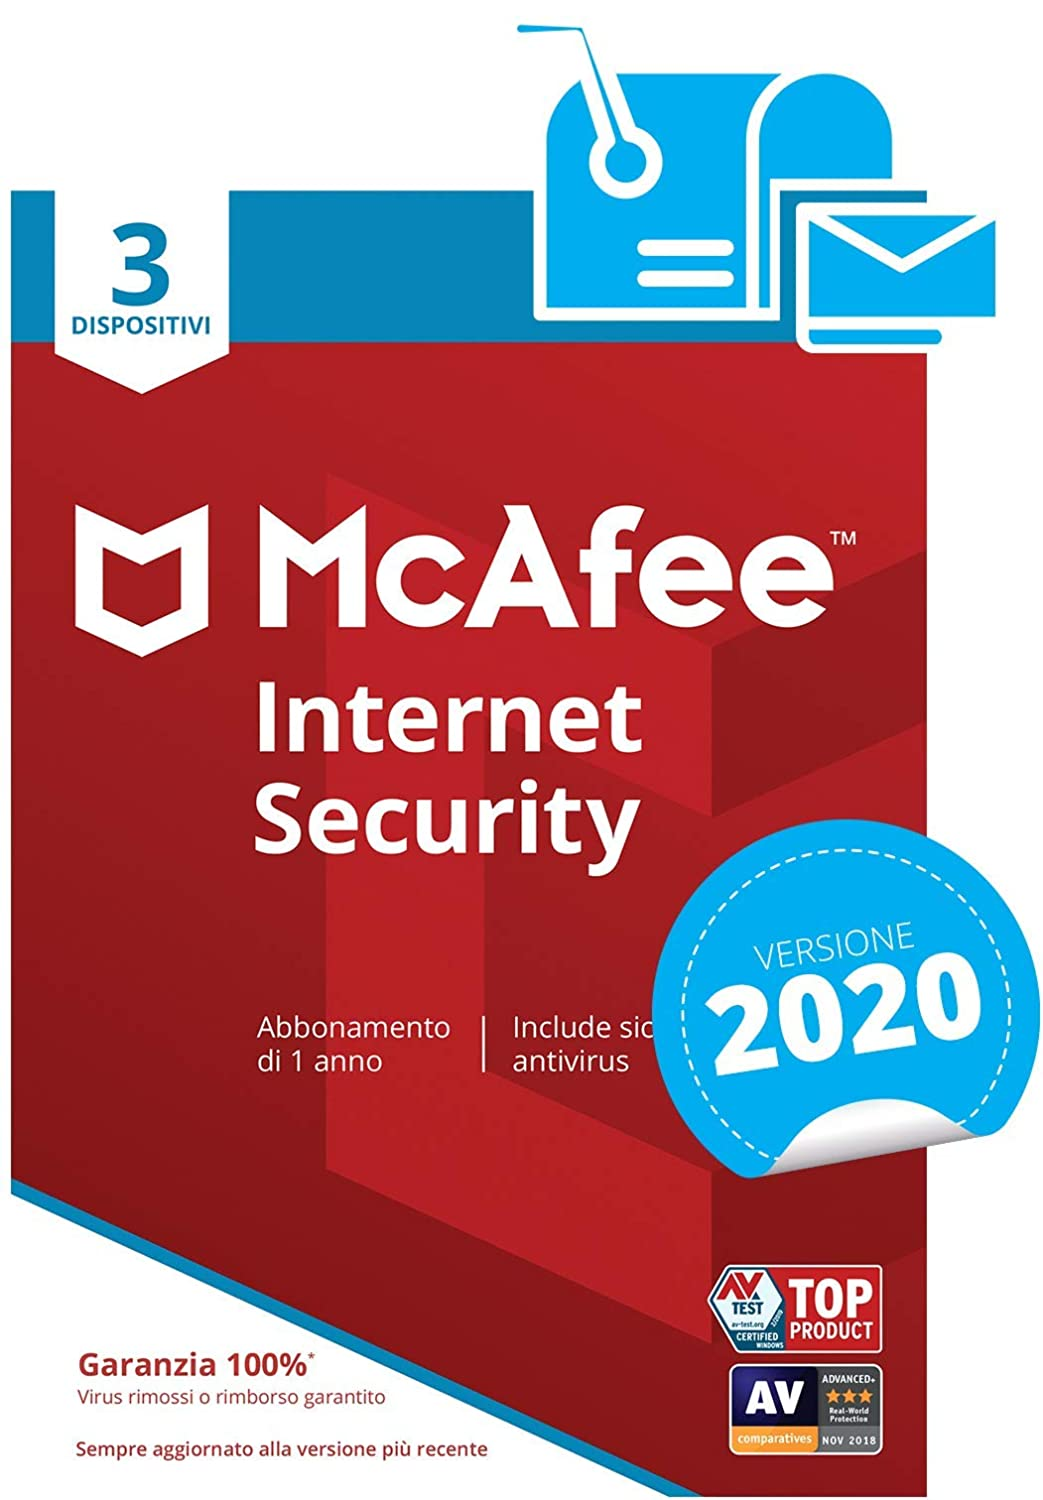 McAfee Internet Security 2020 | 3 Dispositivi | Abbonamento di 1 anno | PC/Mac/Smartphone/Tablet | Codice di attivazione via mail